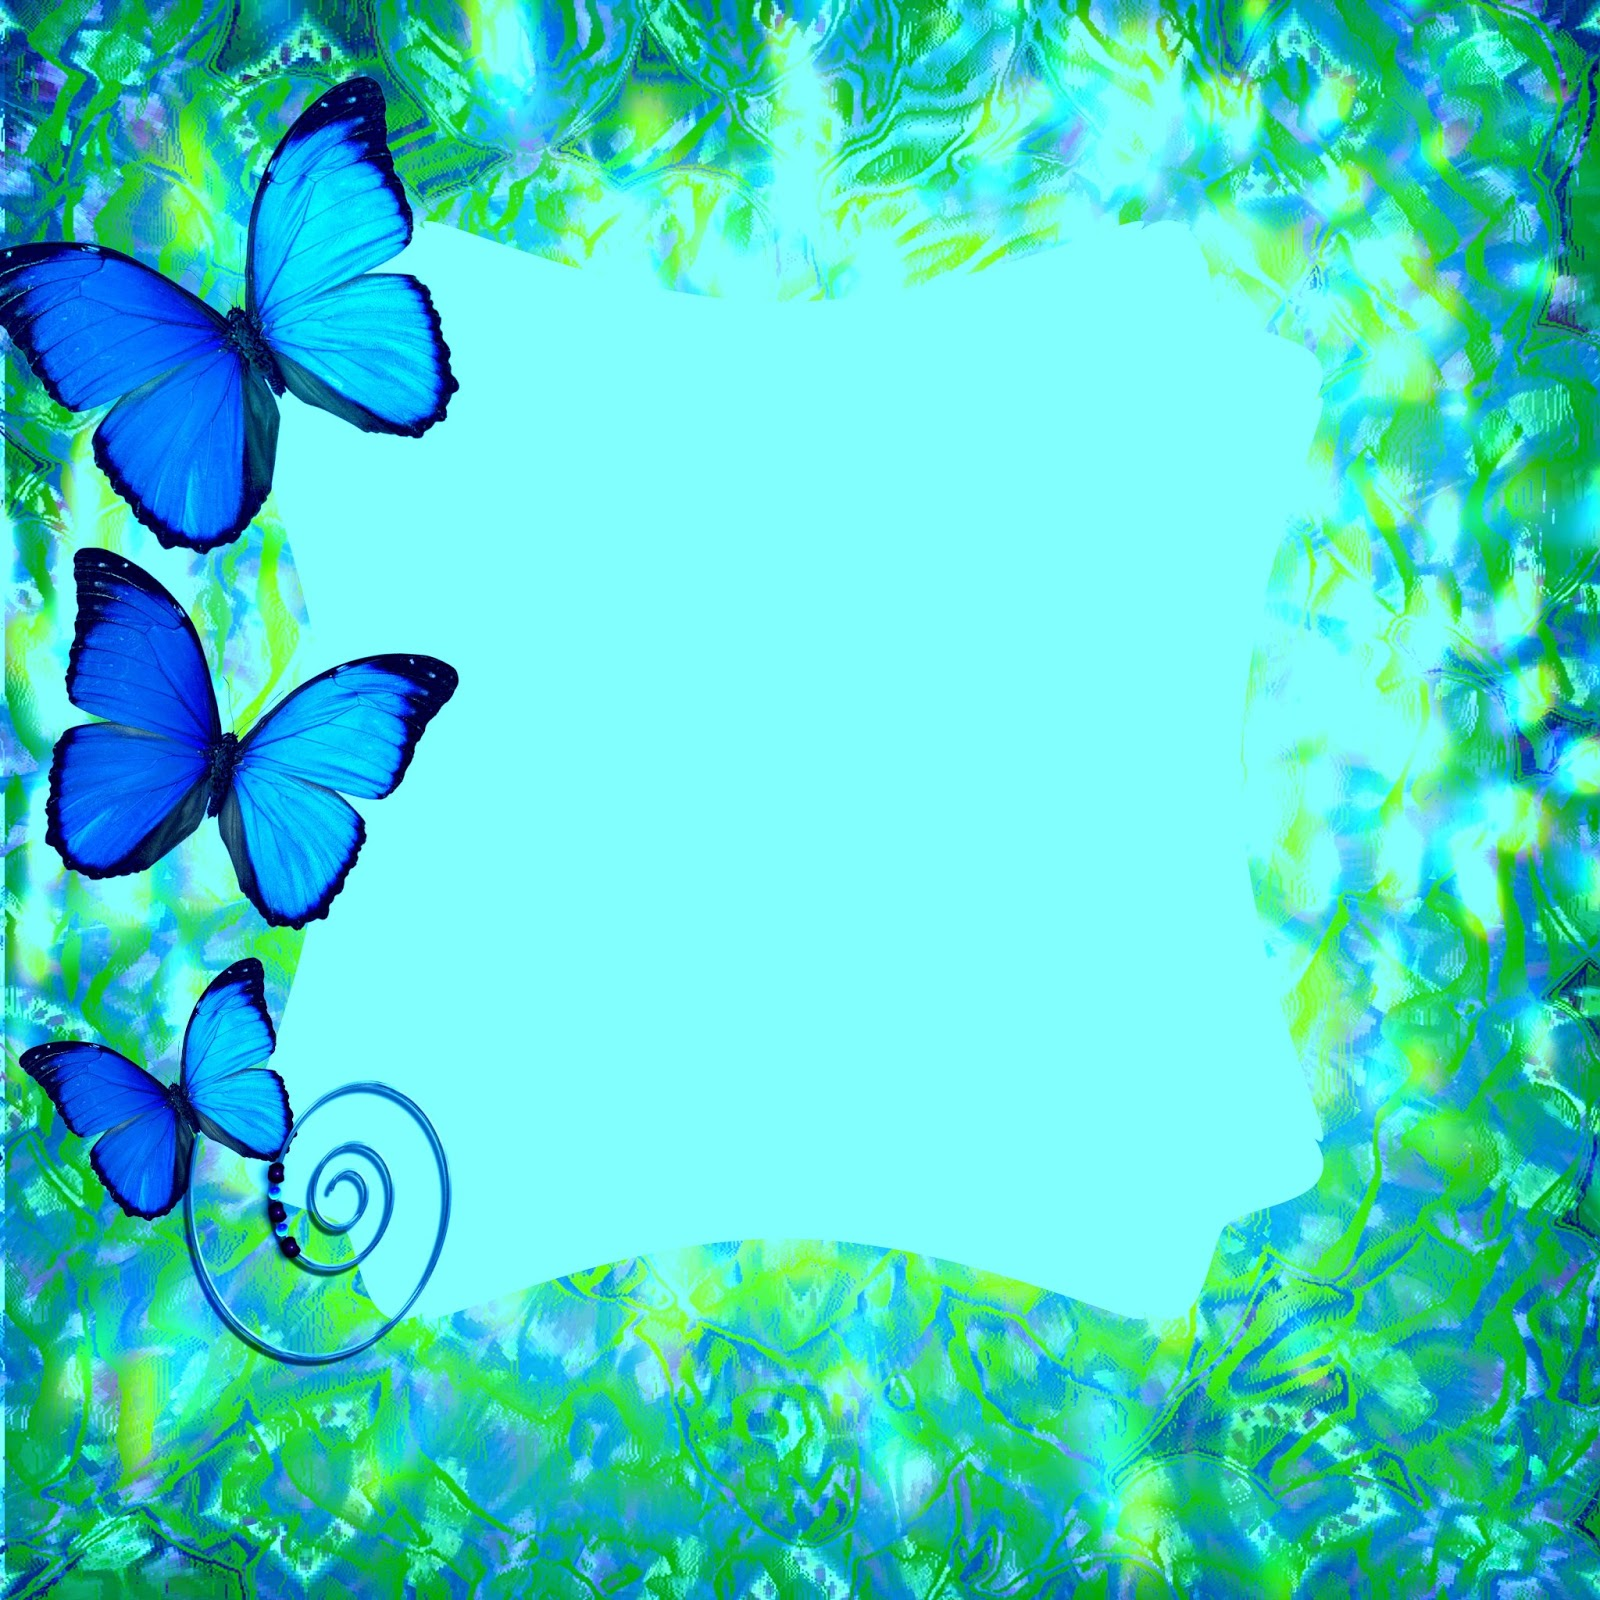 Picture Butterfly Borders - ClipArt Best